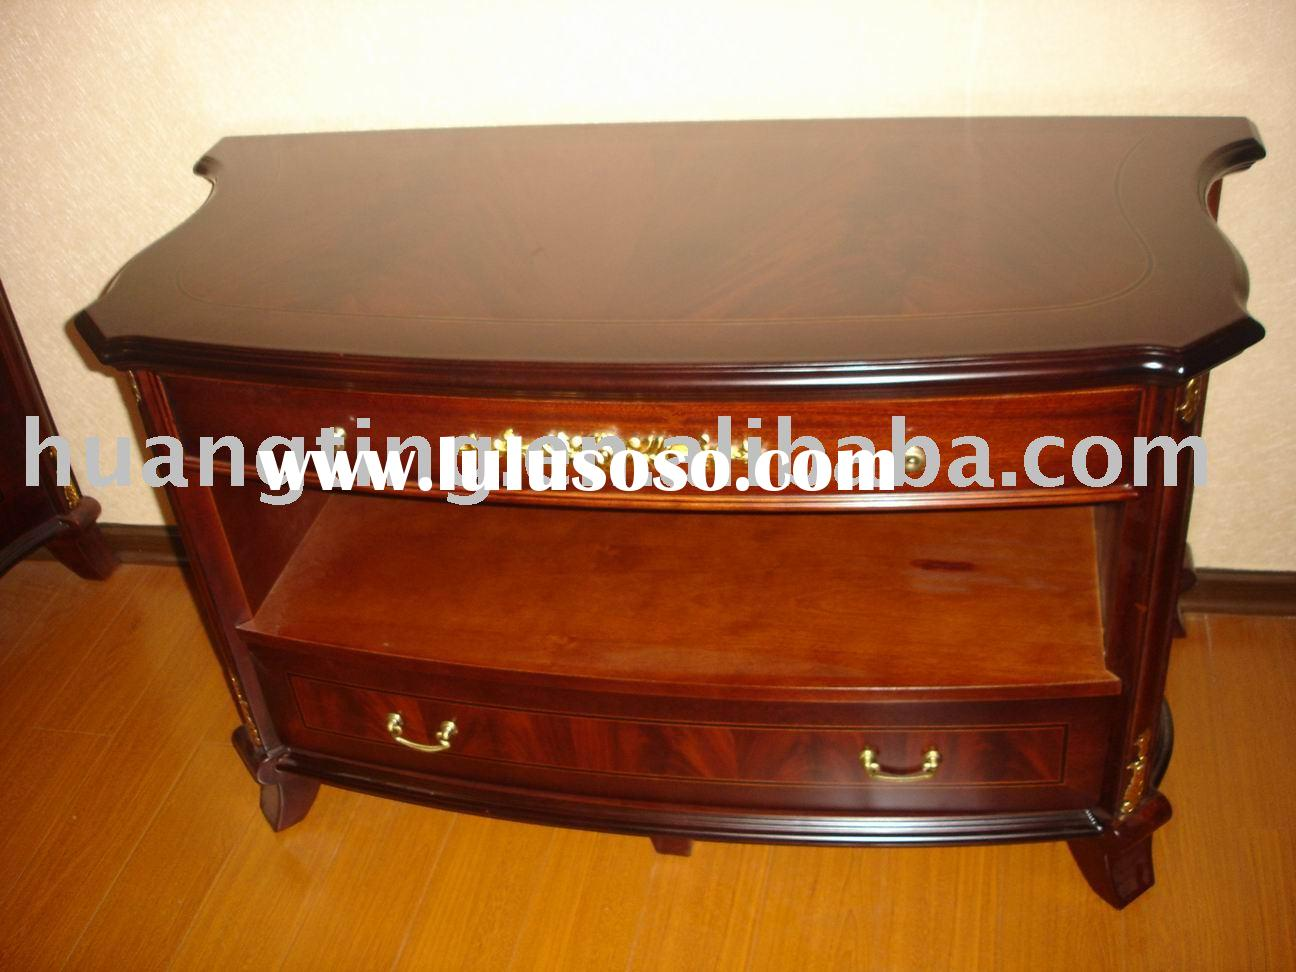 solid wood small TV stand,wooden TV stand,european style TV stand.